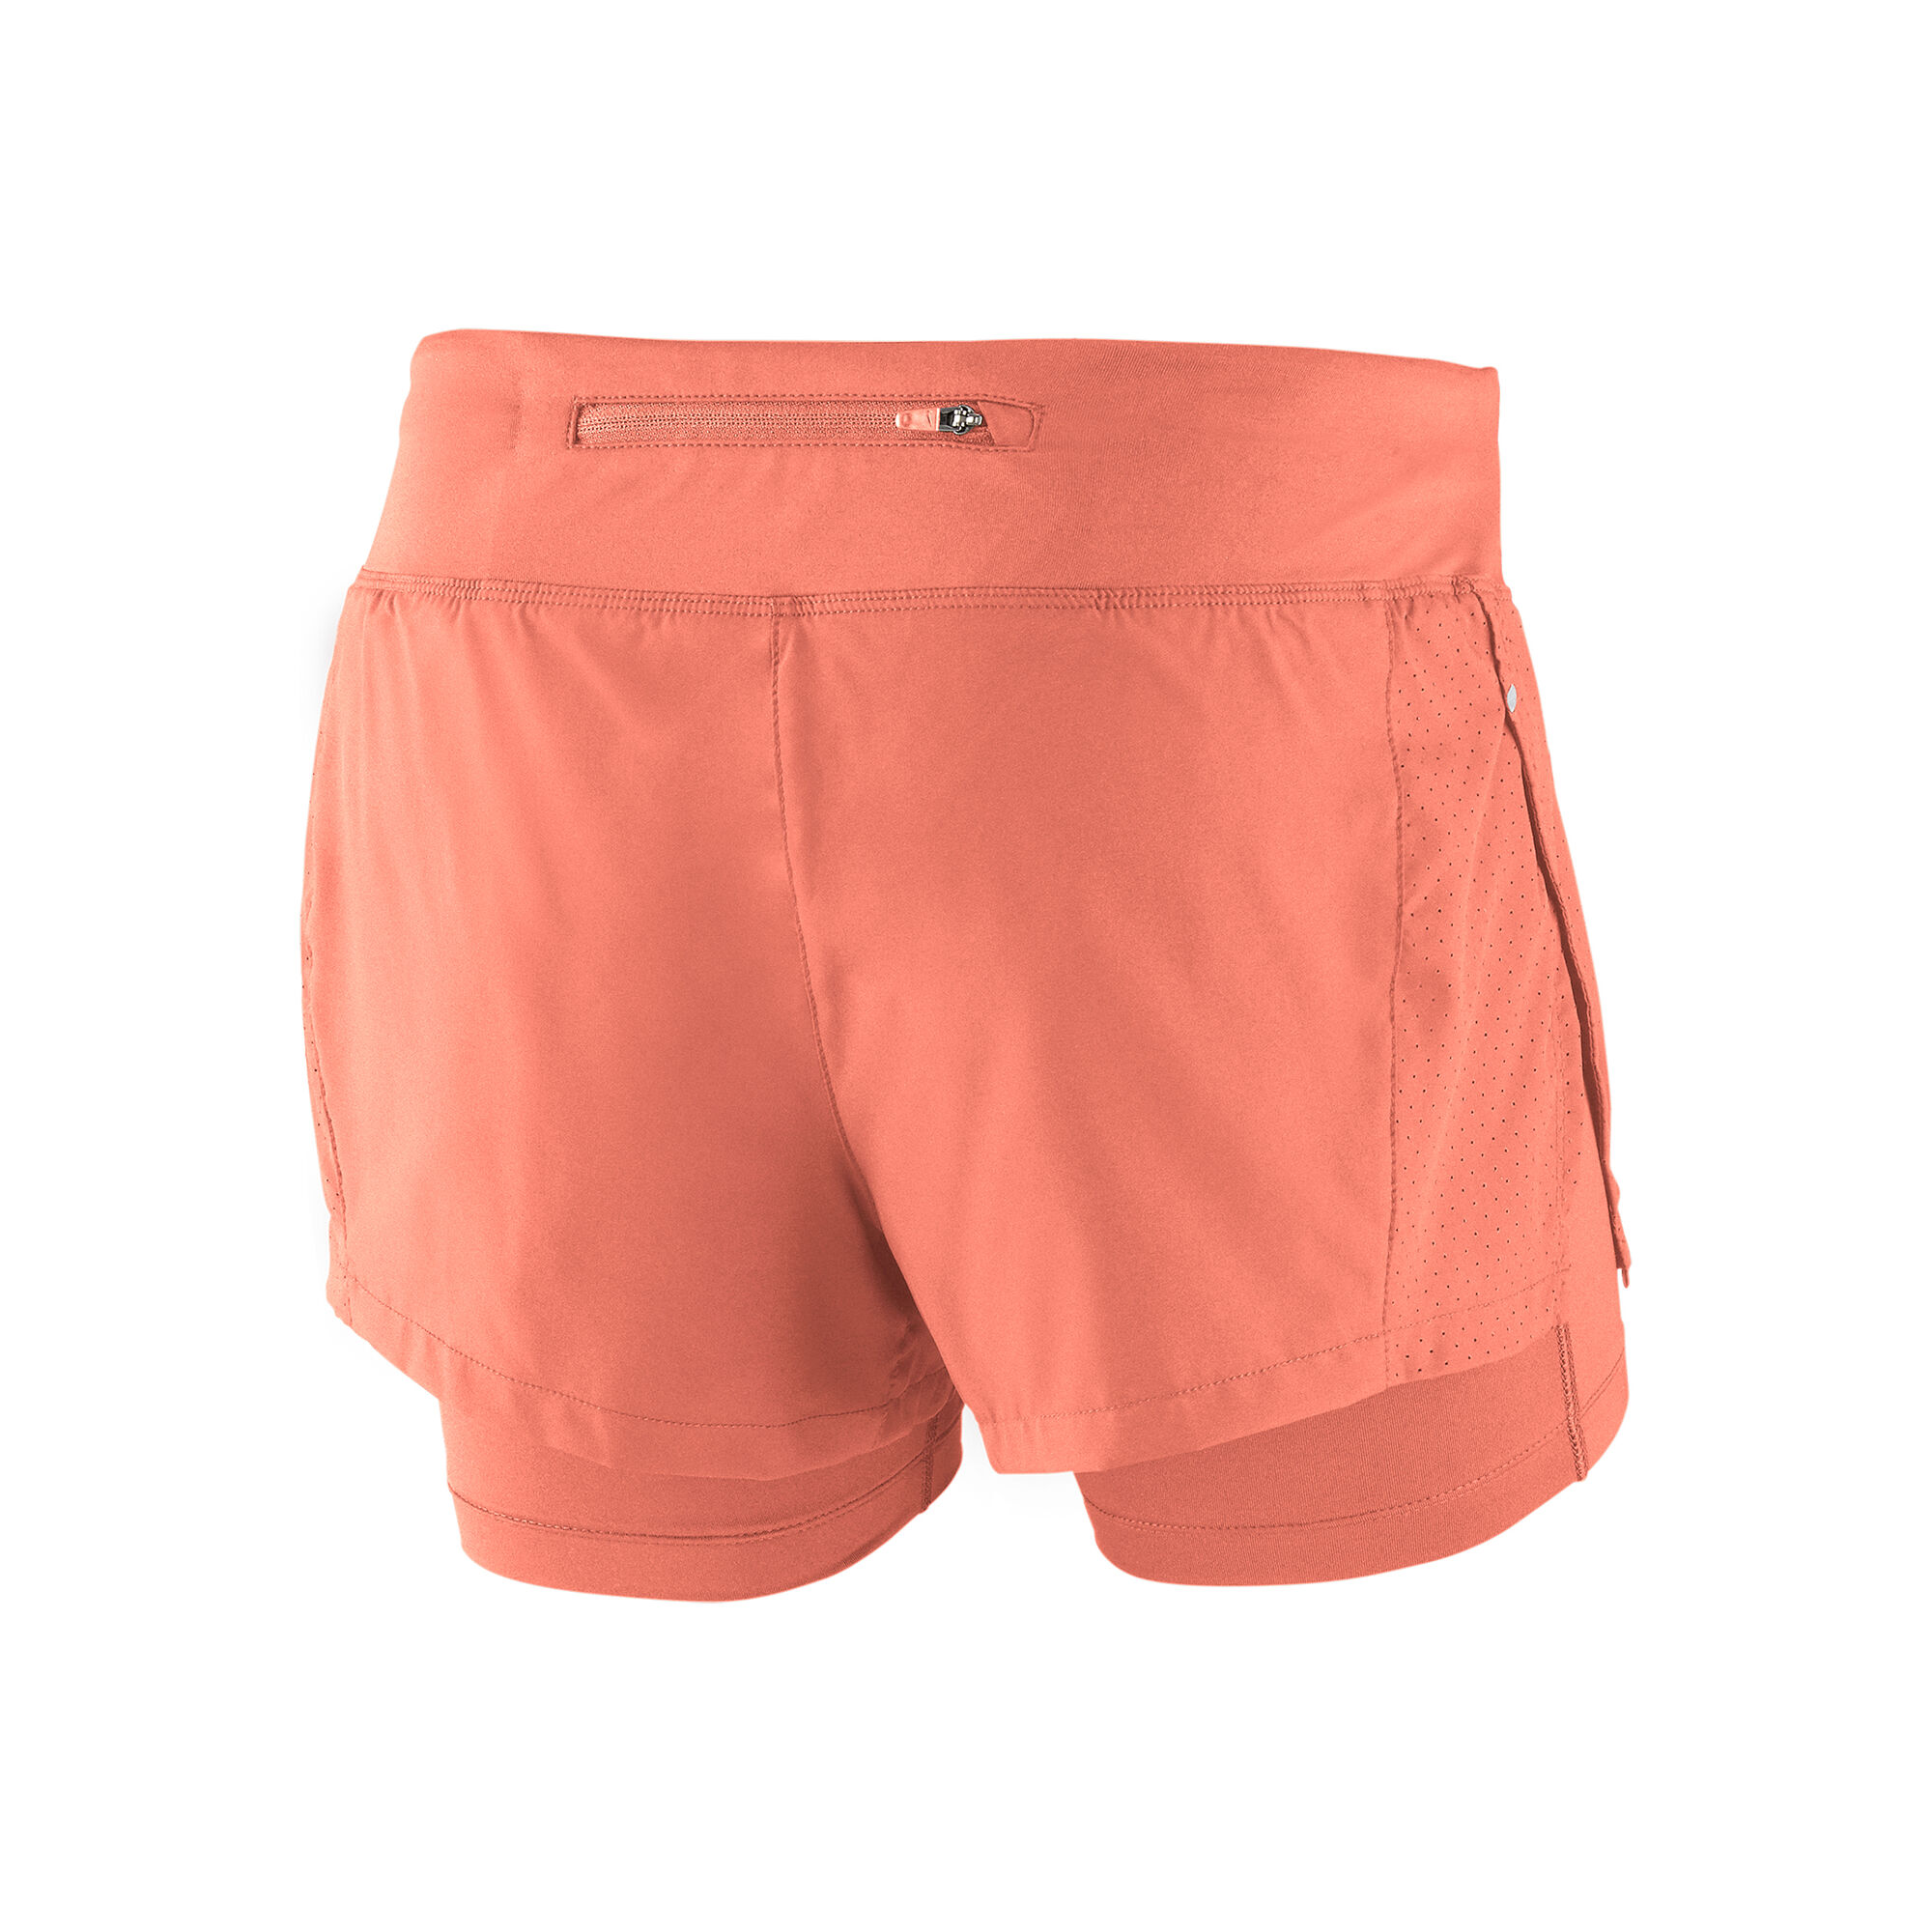 save off 864af a1fe5 Nike Nike Nike Nike Nike. Eclipse 2-in-1 Shorts ...